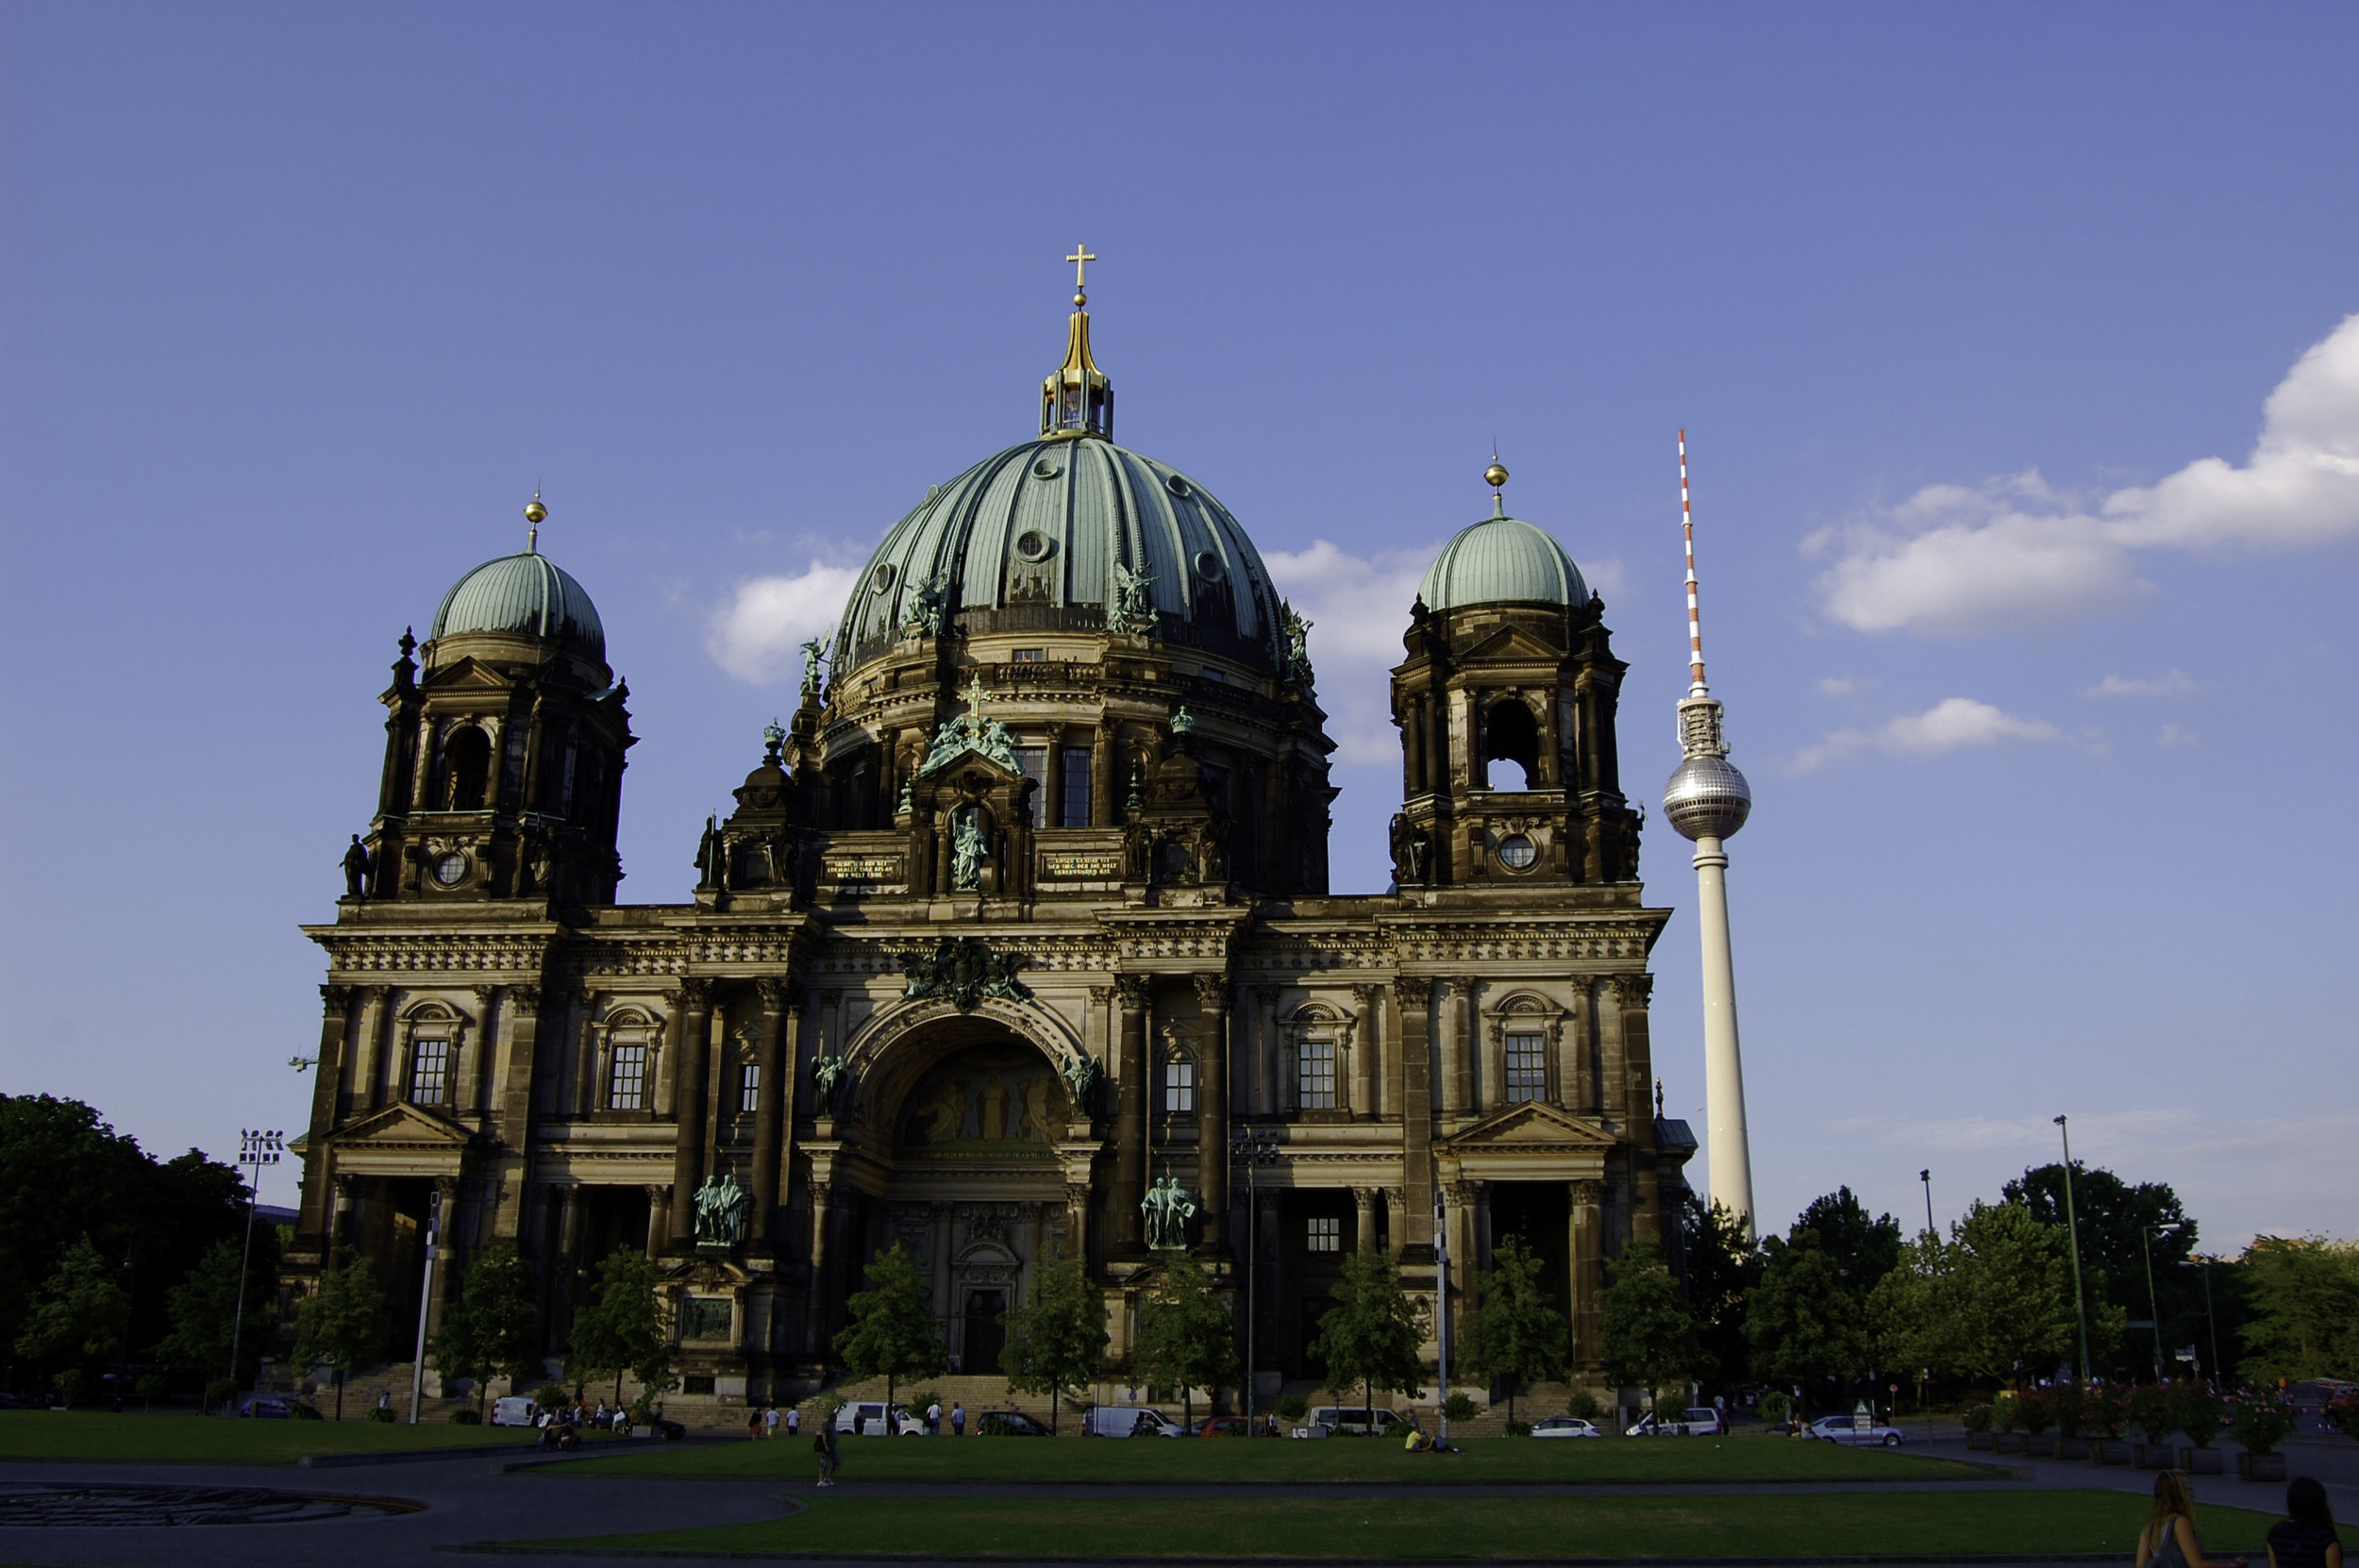 berlin-germany-europe-travel-explore-adventure-architecture-night-food-international-beauty-look-authentic-1003.jpg